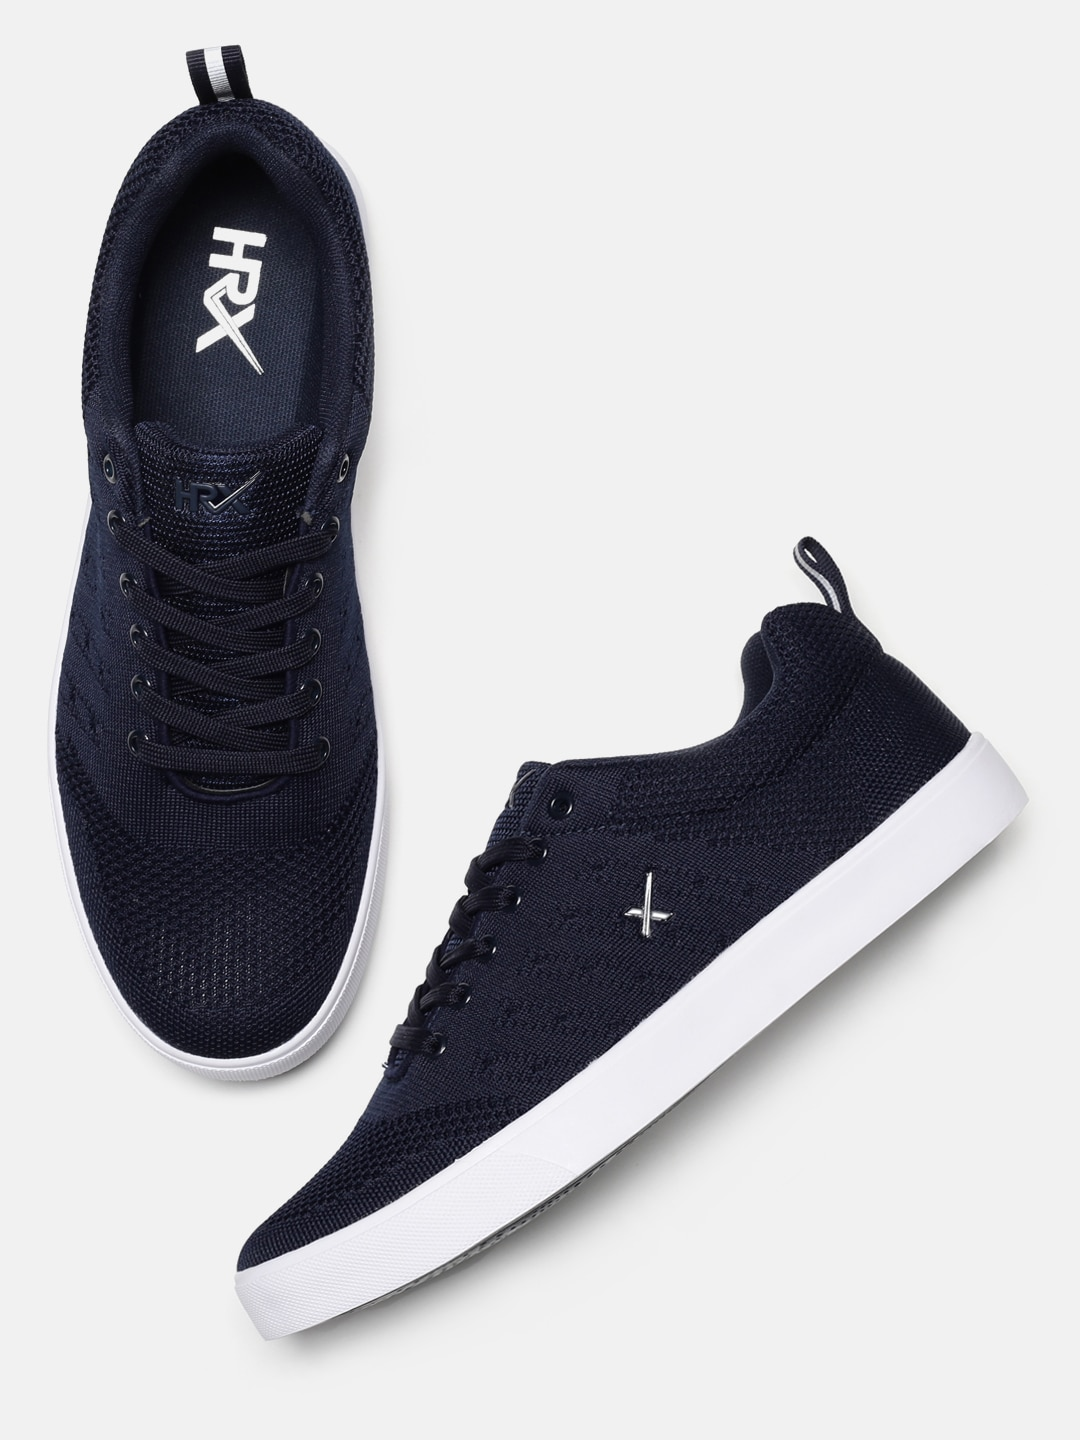 62727c70f8e Hrx Shoes for Men - Buy Hrx Shoes Online in India